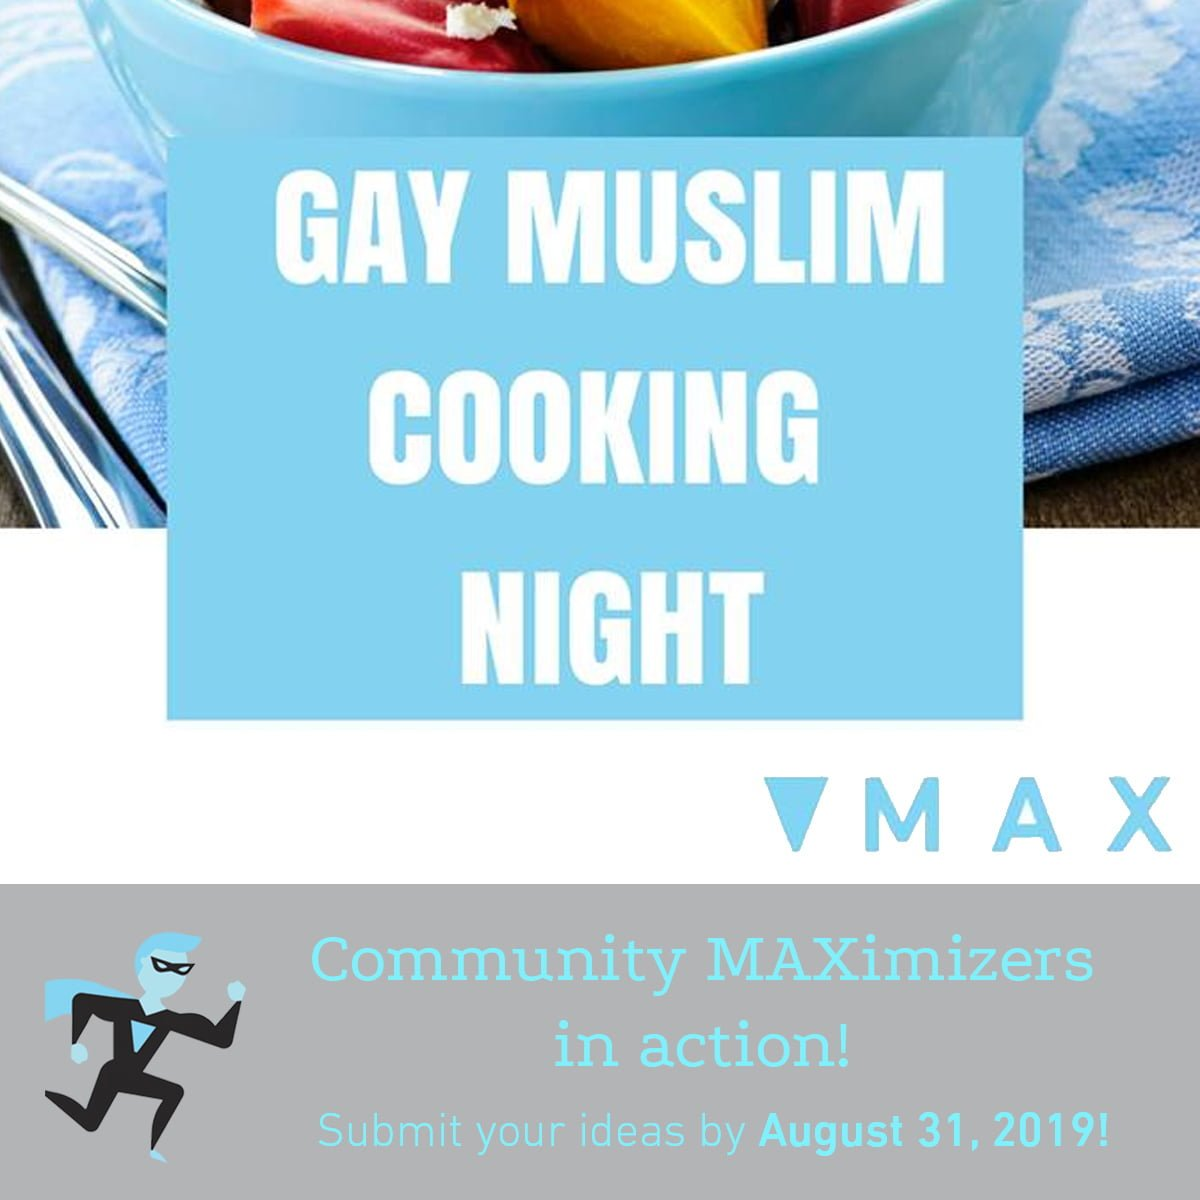 Gay Muslim Cooking Nightposter for Community MAXimizer Program